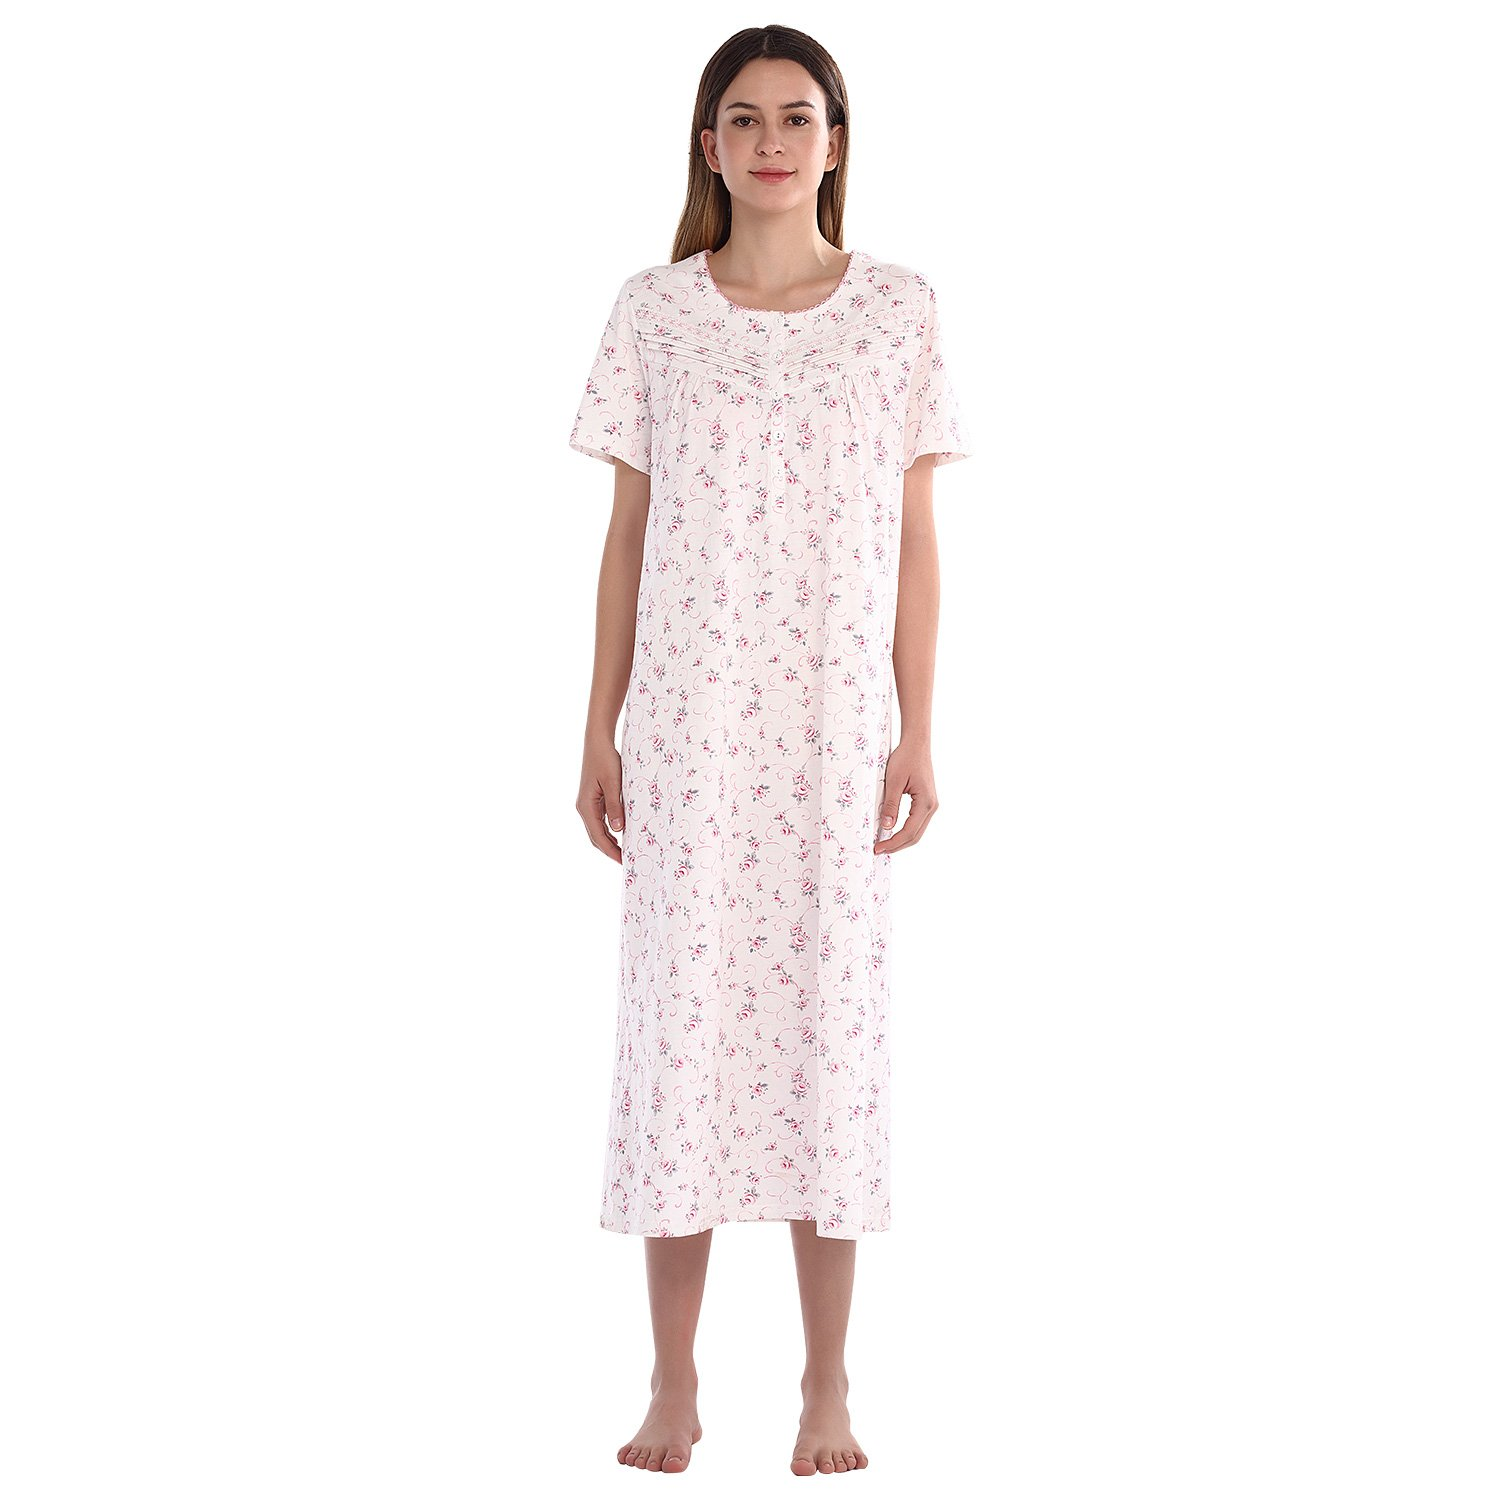 4d9c340669 STYLE - This style is a short sleeve full length nightgown which is made  from 100% cotton knitted fabric. The fabric is lightweight and breathable